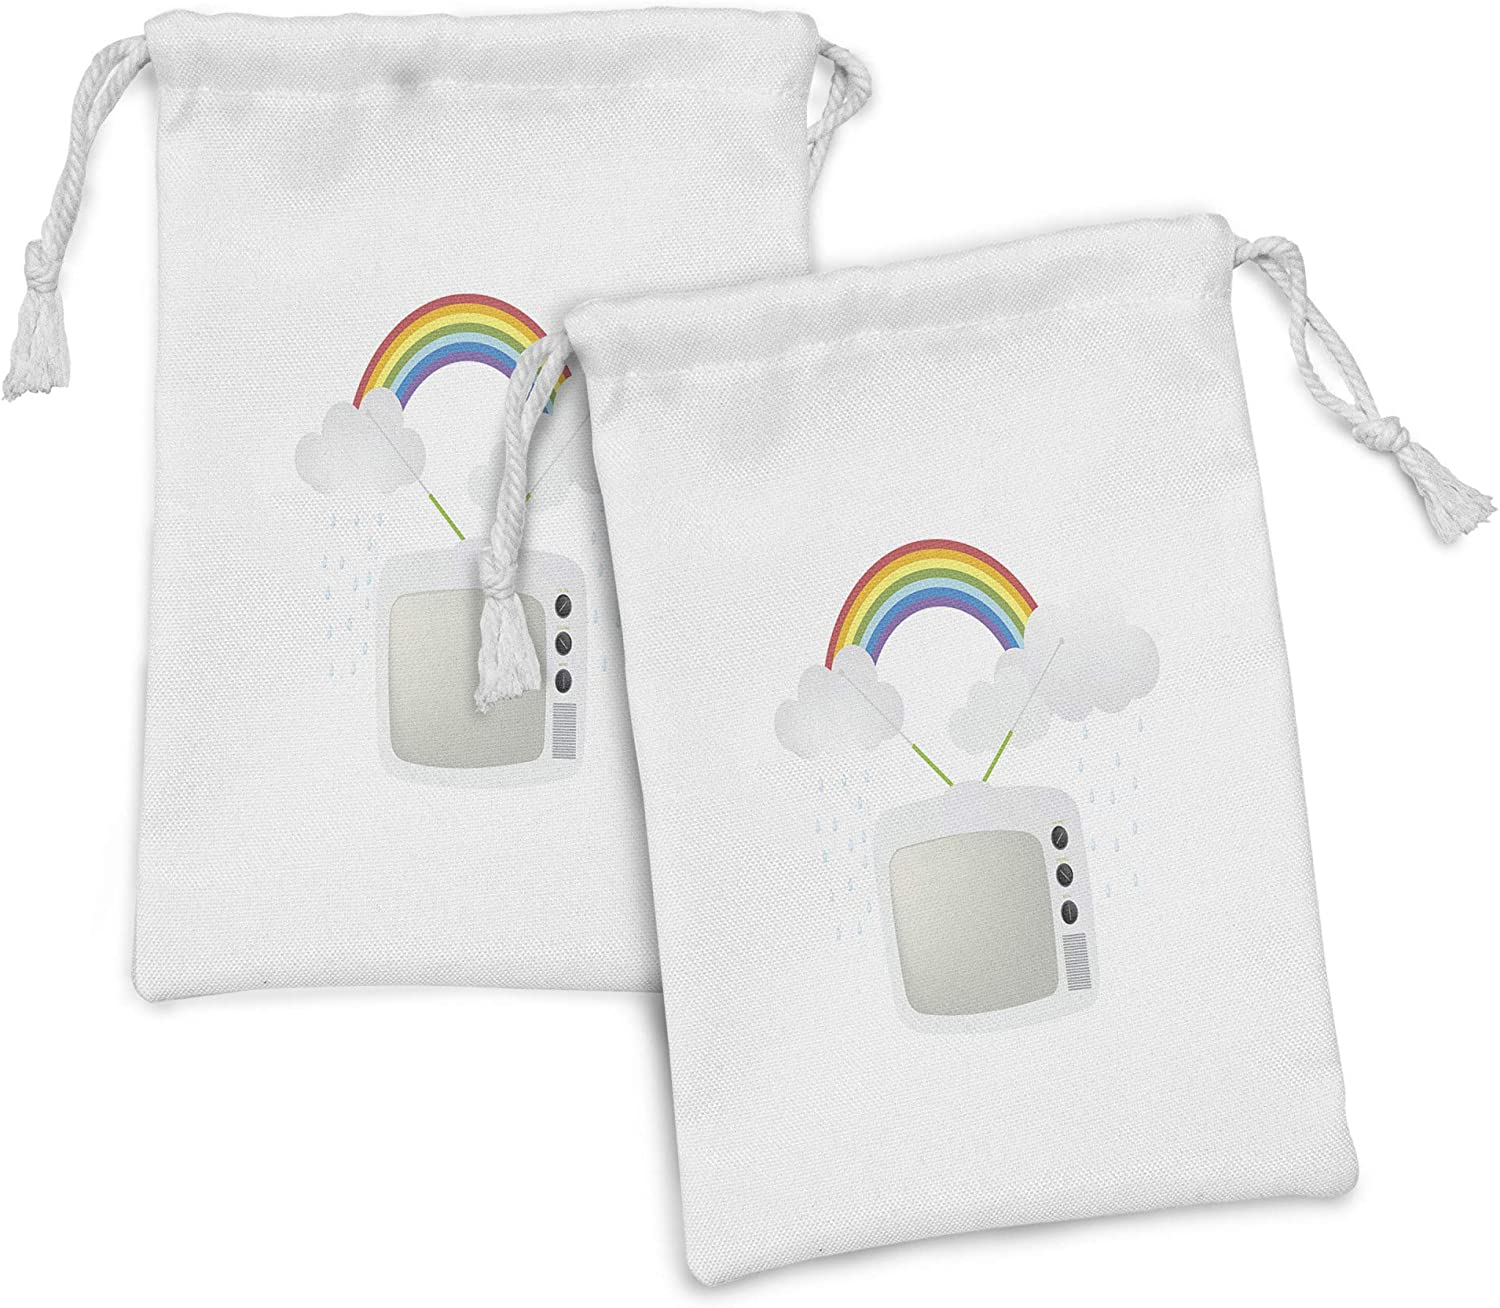 Ambesonne Vintage Max 90% OFF Rainbow Fabric Pouch Now free shipping Set TV of Old Rai with 2